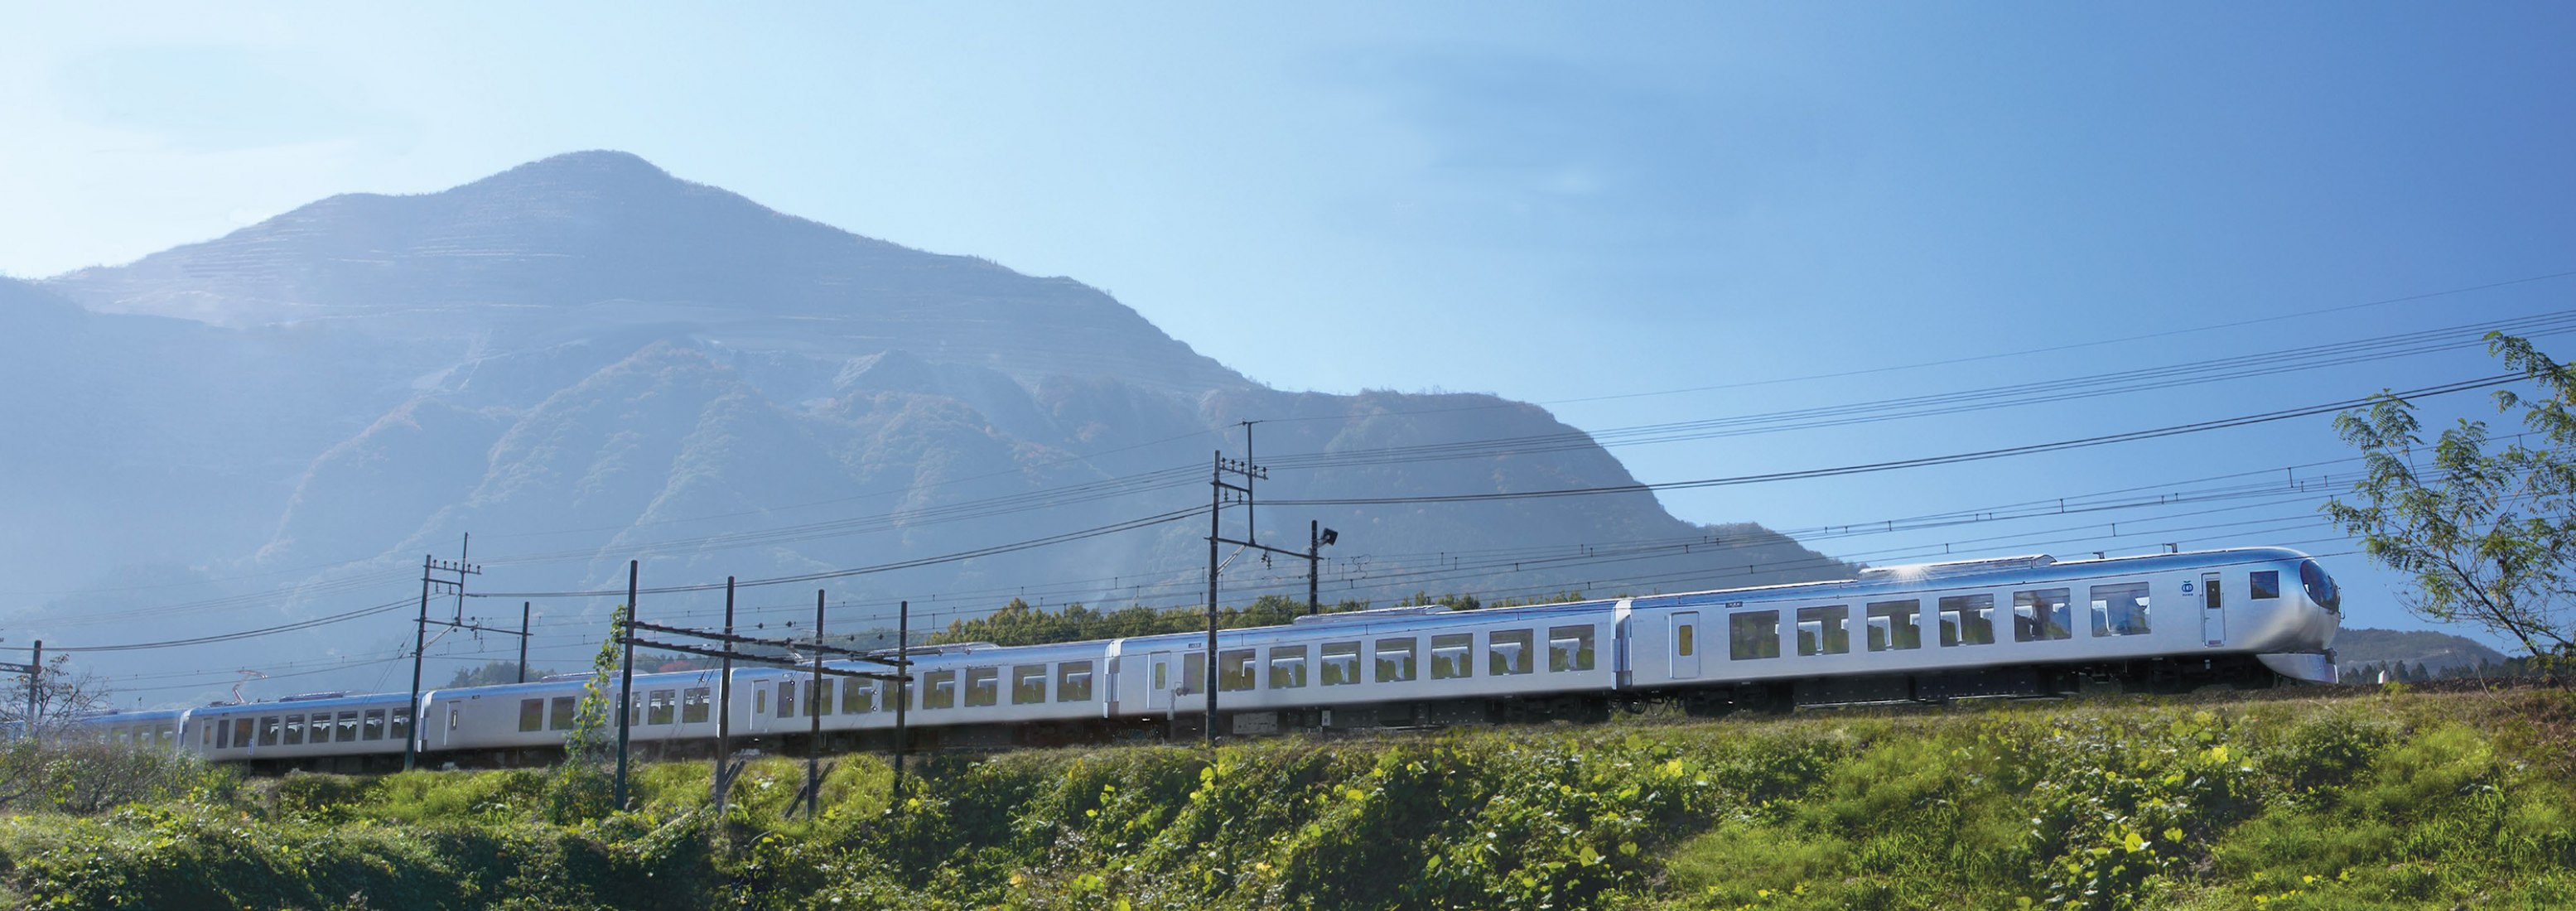 Laview train by Kazuyo Sejima. Photograph by Seibu Railway's Laview